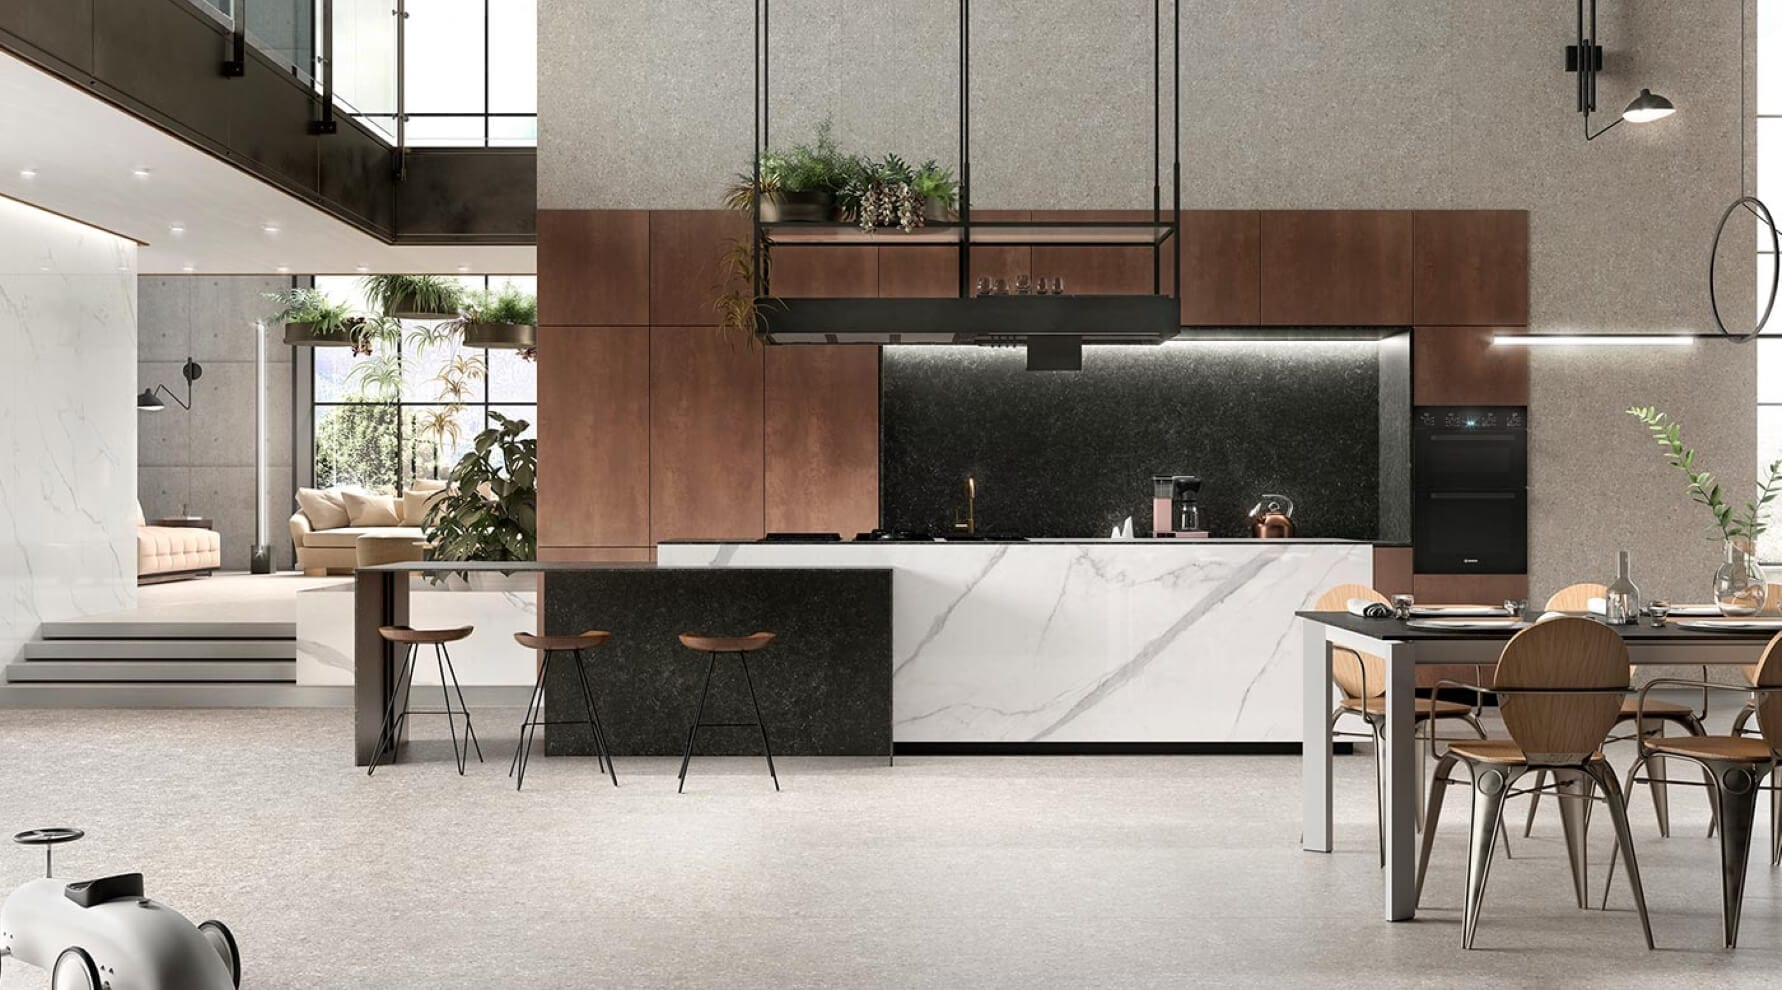 Clay premium ceramic kitchens